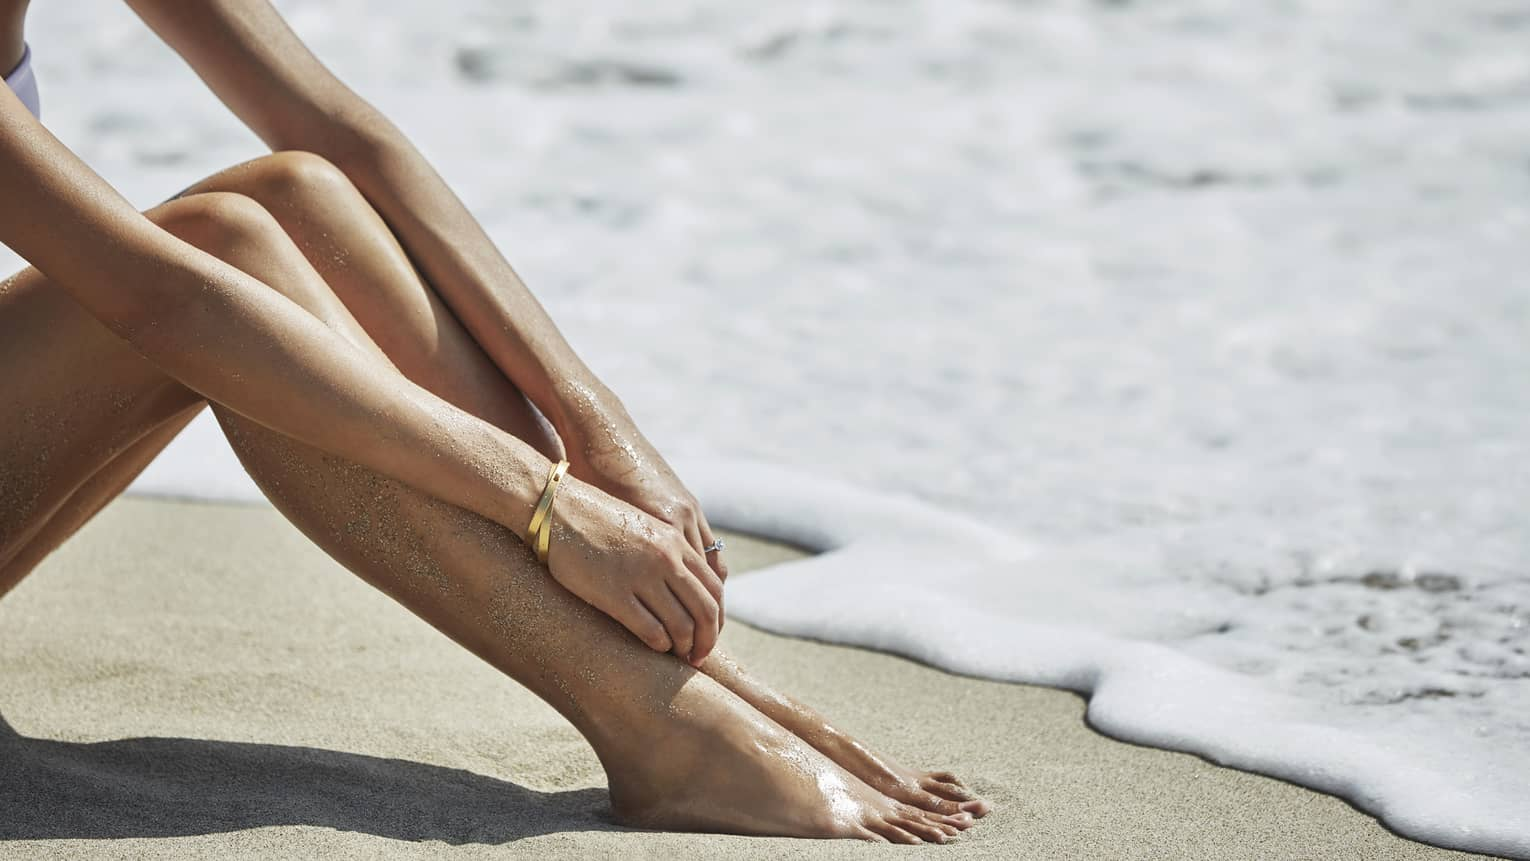 Close-up of woman's arms resting on bare legs as she sits on sand beach by ocean